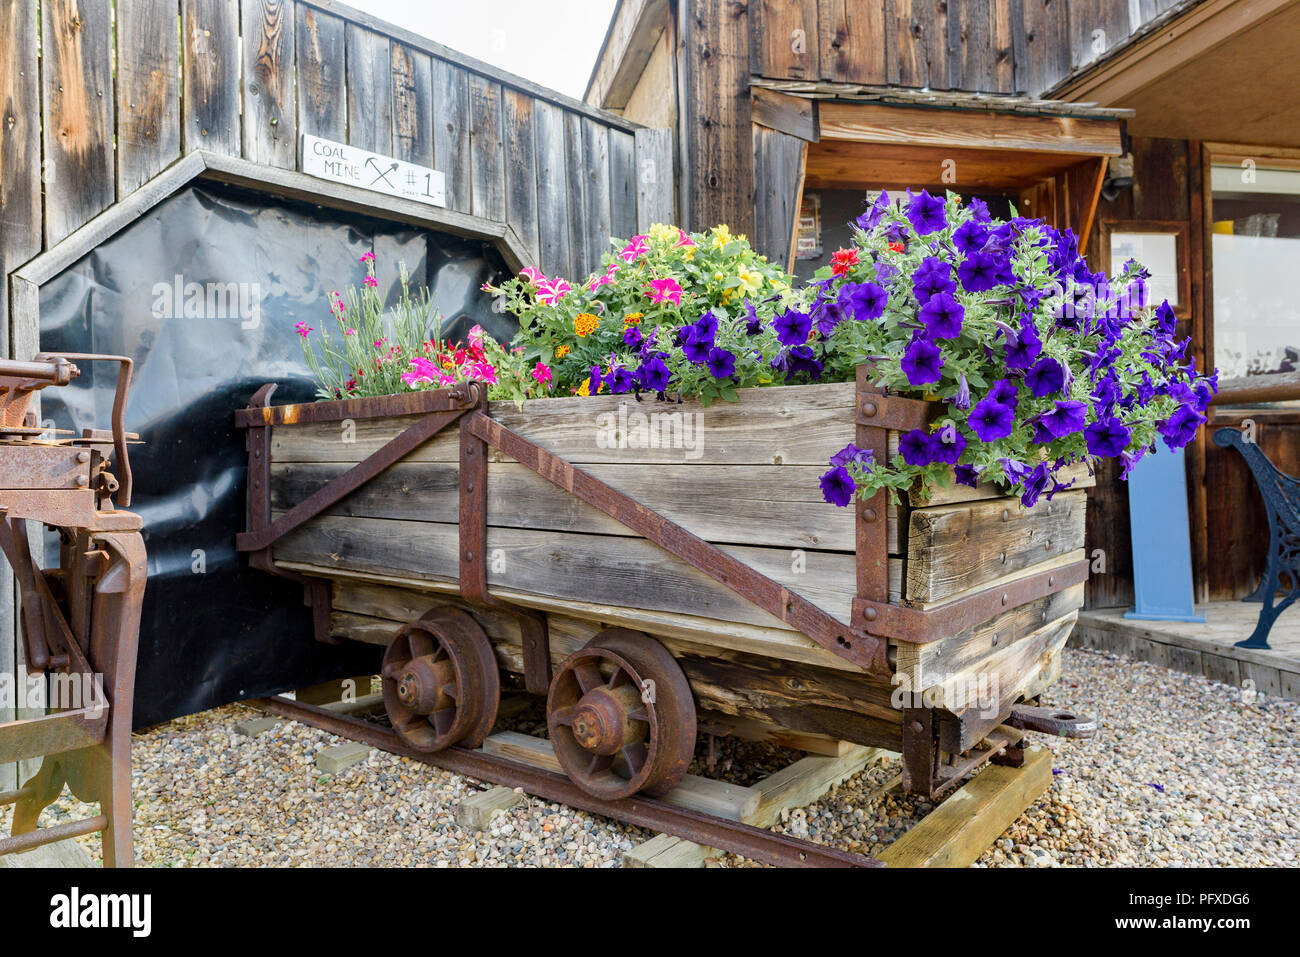 Garden fowers in coal mine rail cart, Big Valley, Alberta, Canada. - Stock Image